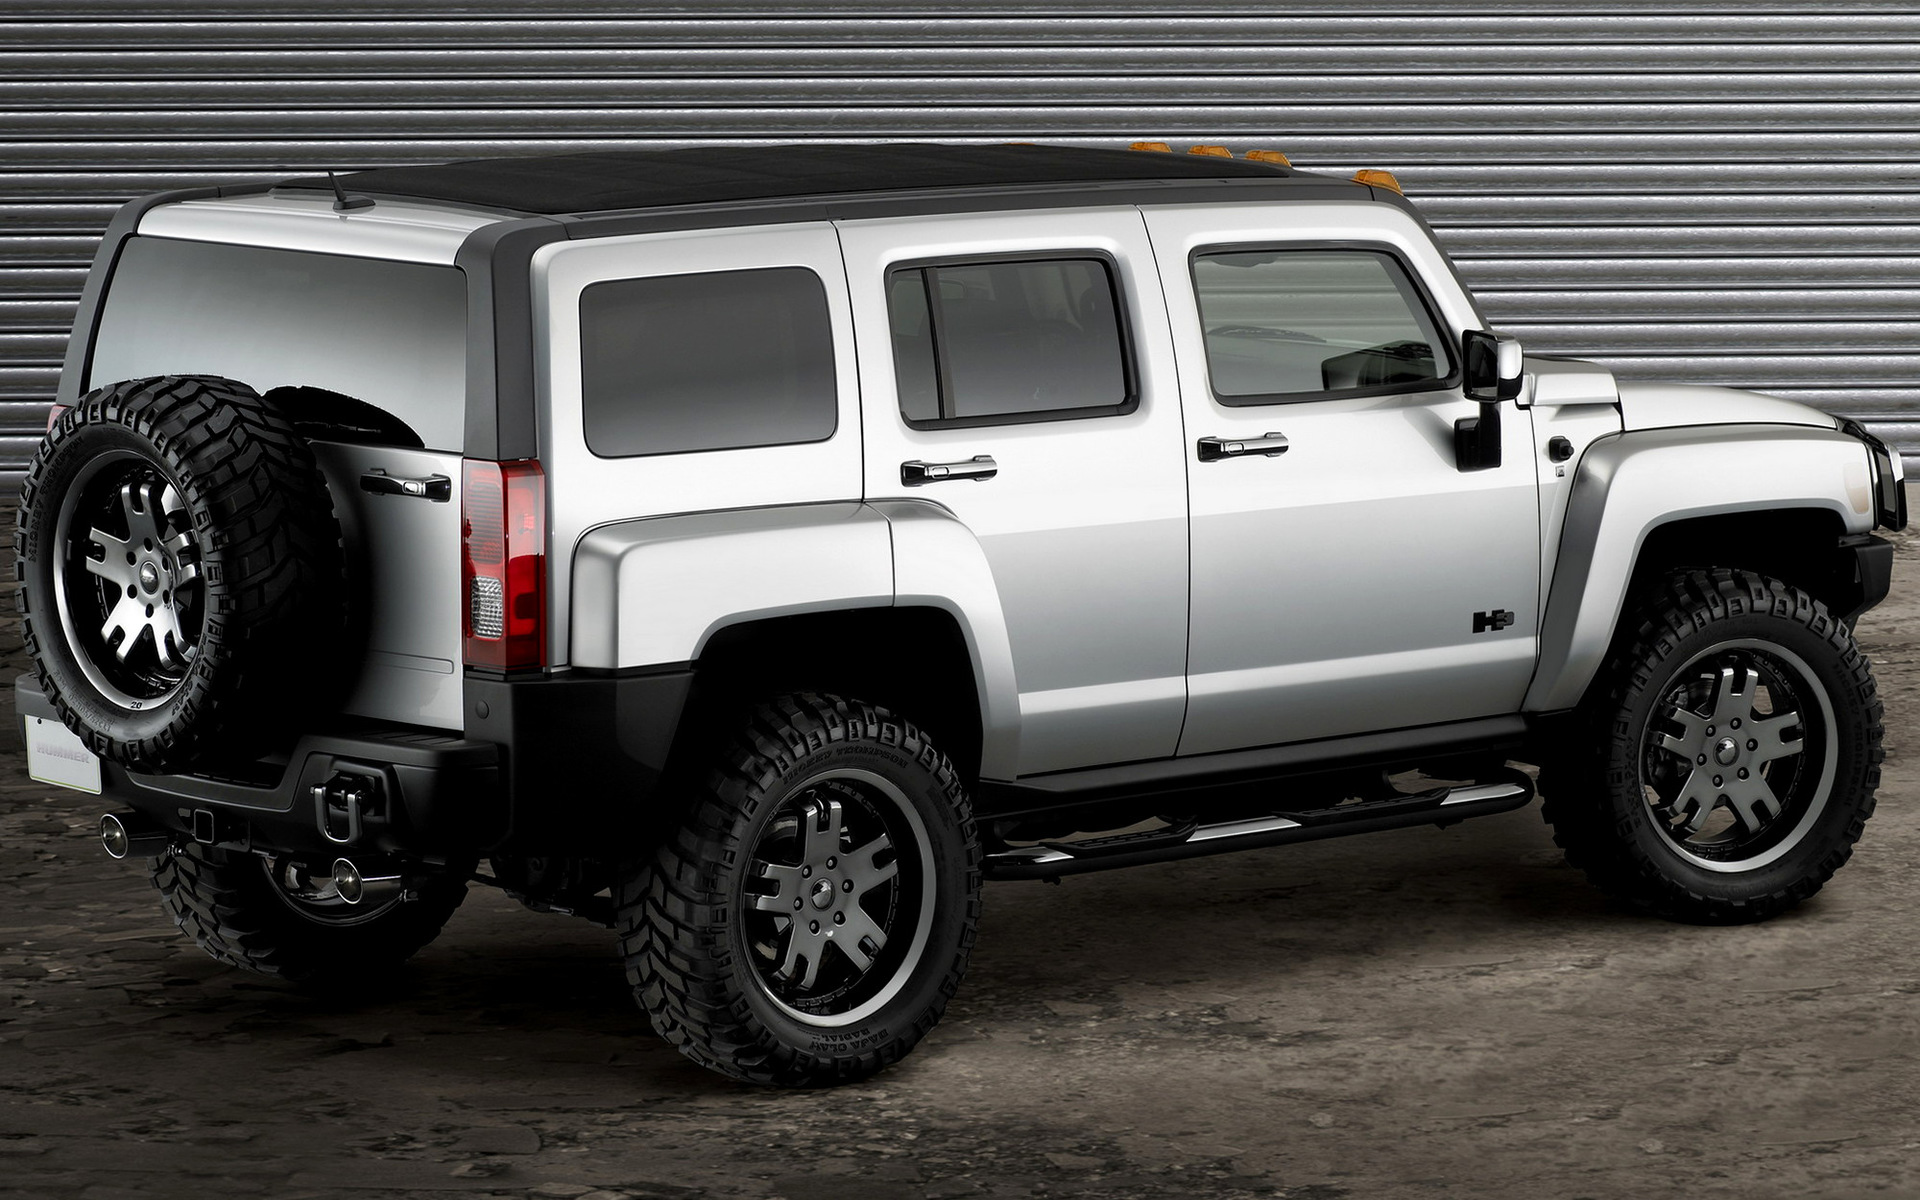 Hummer H3 Open Top Concept 2007 Wallpapers and HD Car Pixel